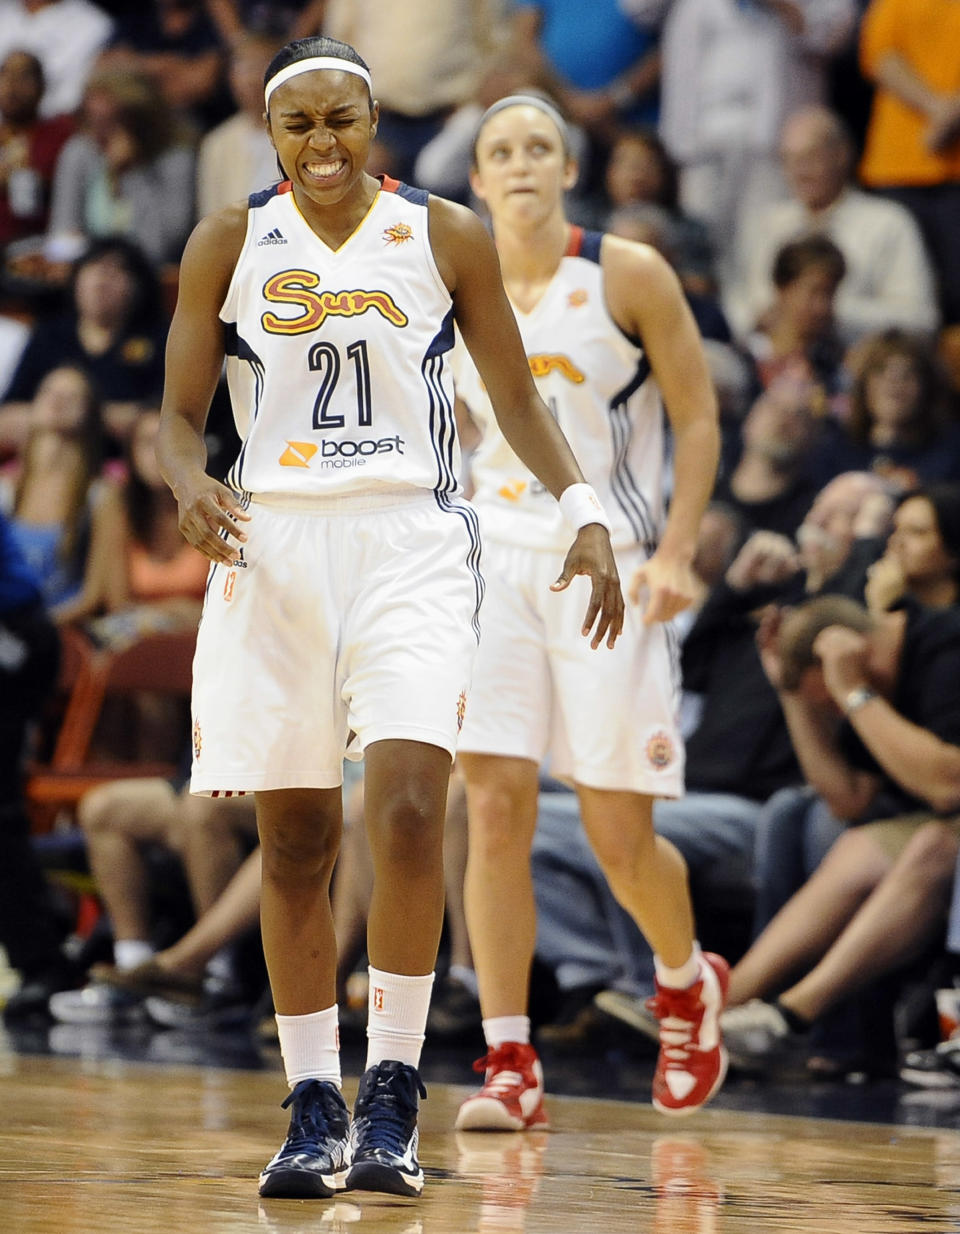 Connecticut Sun's Renee Montgomery reacts after missing a shot at the buzzer during the second half of a WNBA basketball game against the Los Angeles Sparks in Uncasville, Conn., Tuesday, Aug. 6, 2013. The Sparks won 74-72. (AP Photo/Jessica Hill)